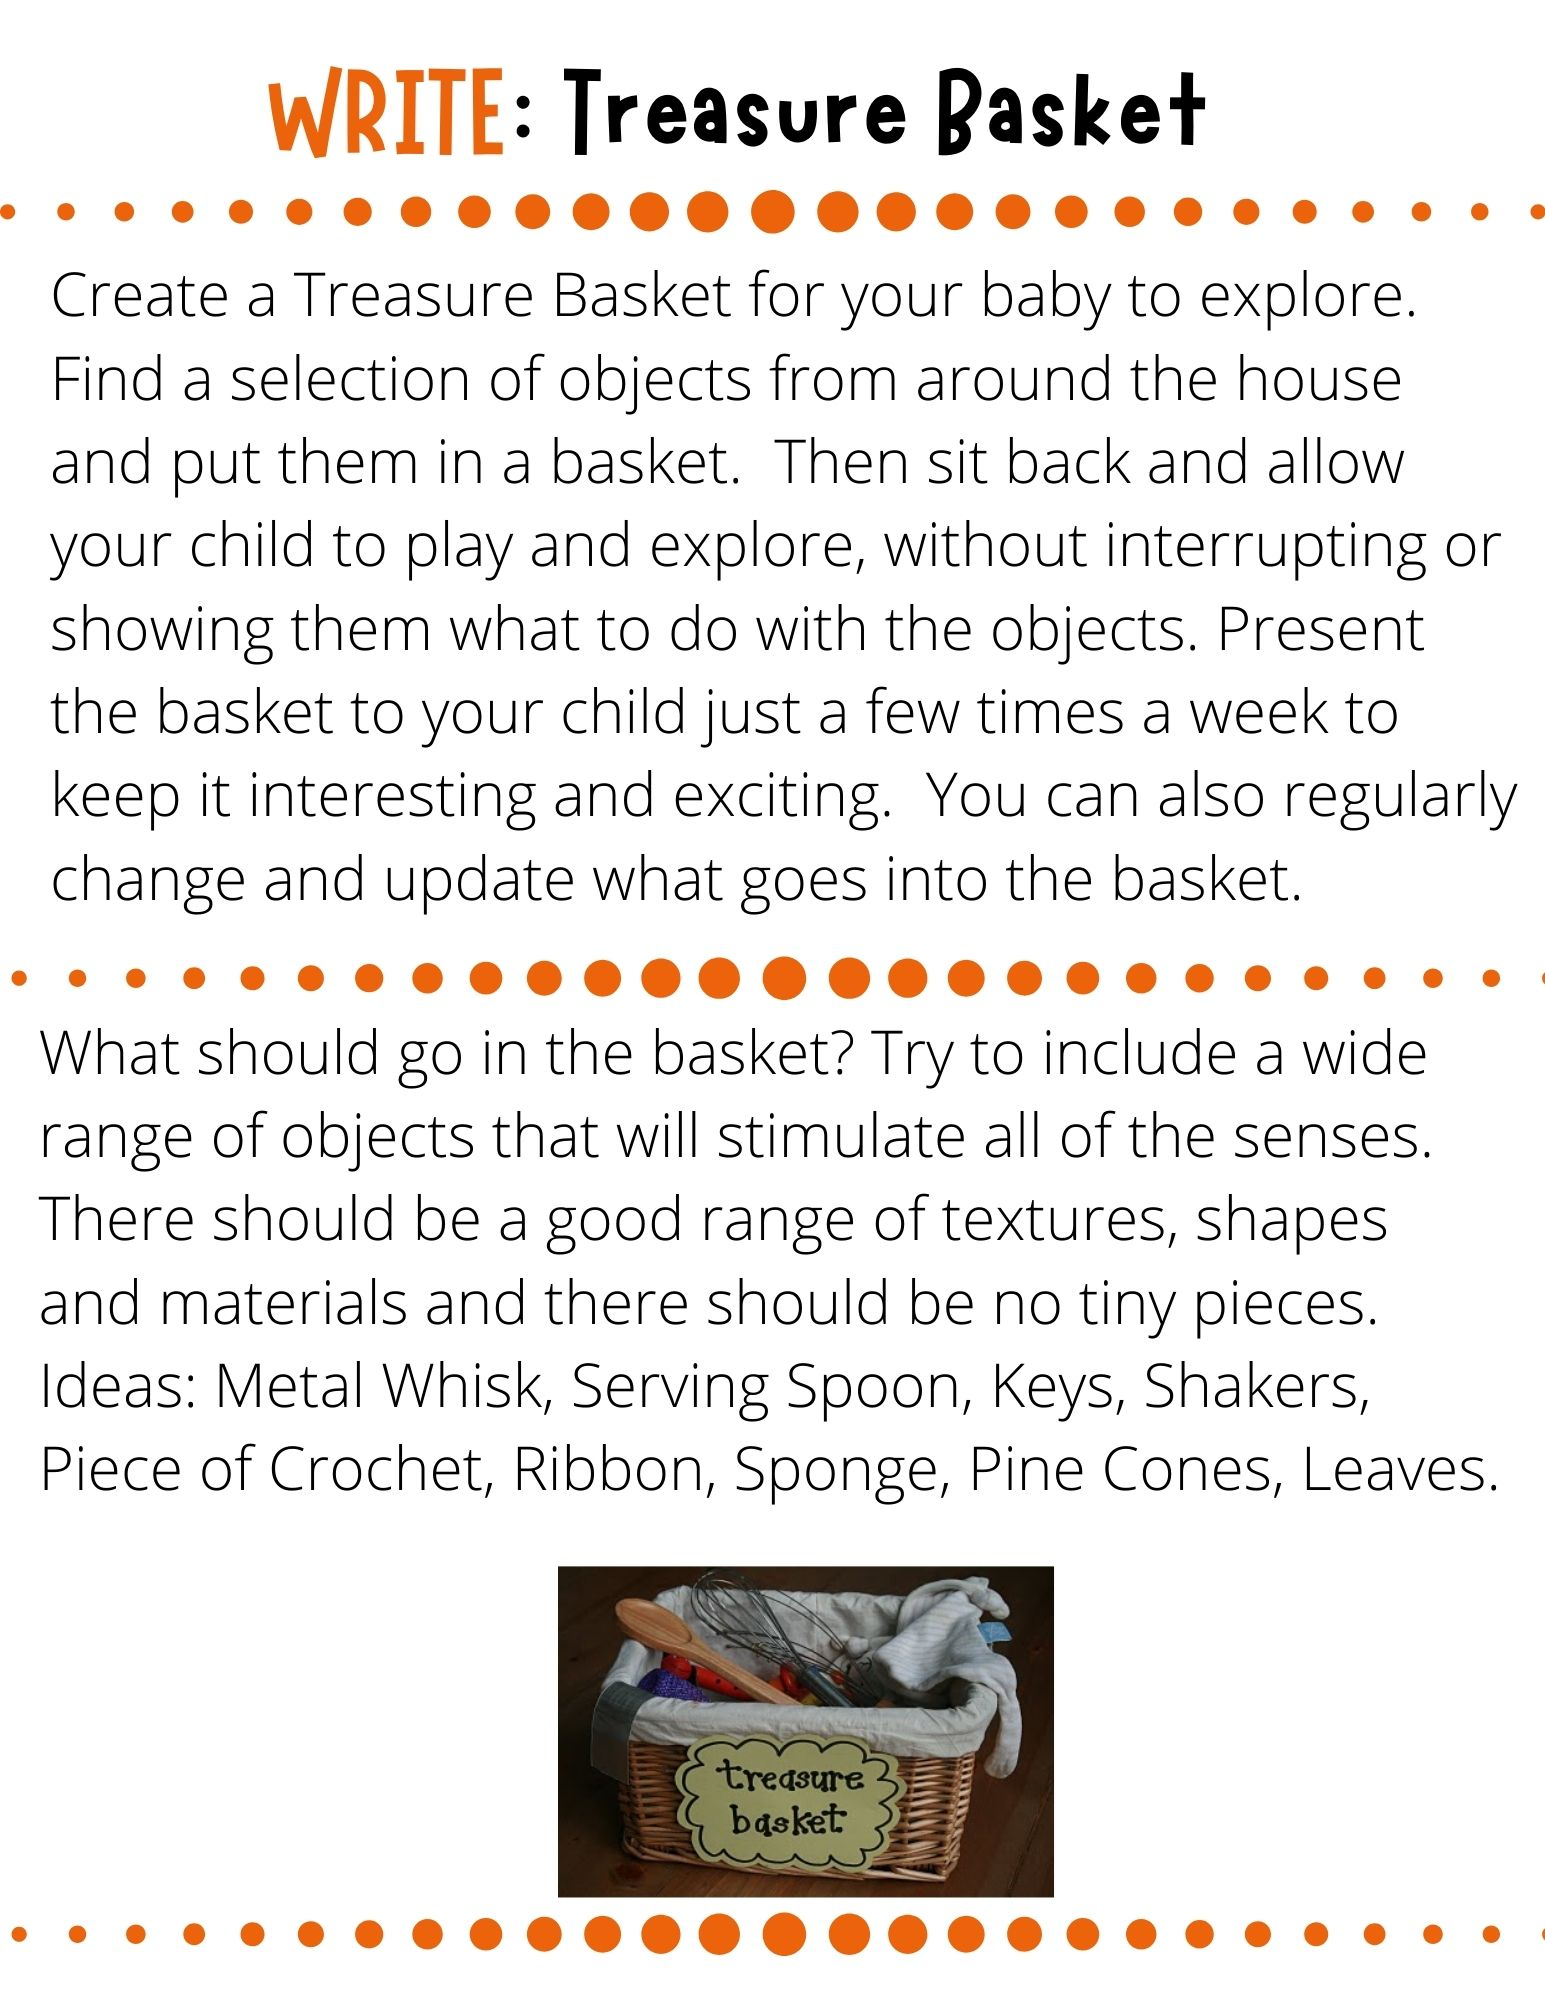 Create a Treasure Basket for your baby to explore.   Find a selection of objects from around the house and put them in a basket.  Then sit back and allow your child to play and explore, without interrupting or showing them what to do with the objects. Present the basket to your child just a few times a week to keep it interesting and exciting.  You can also regularly change and update what goes into the basket.